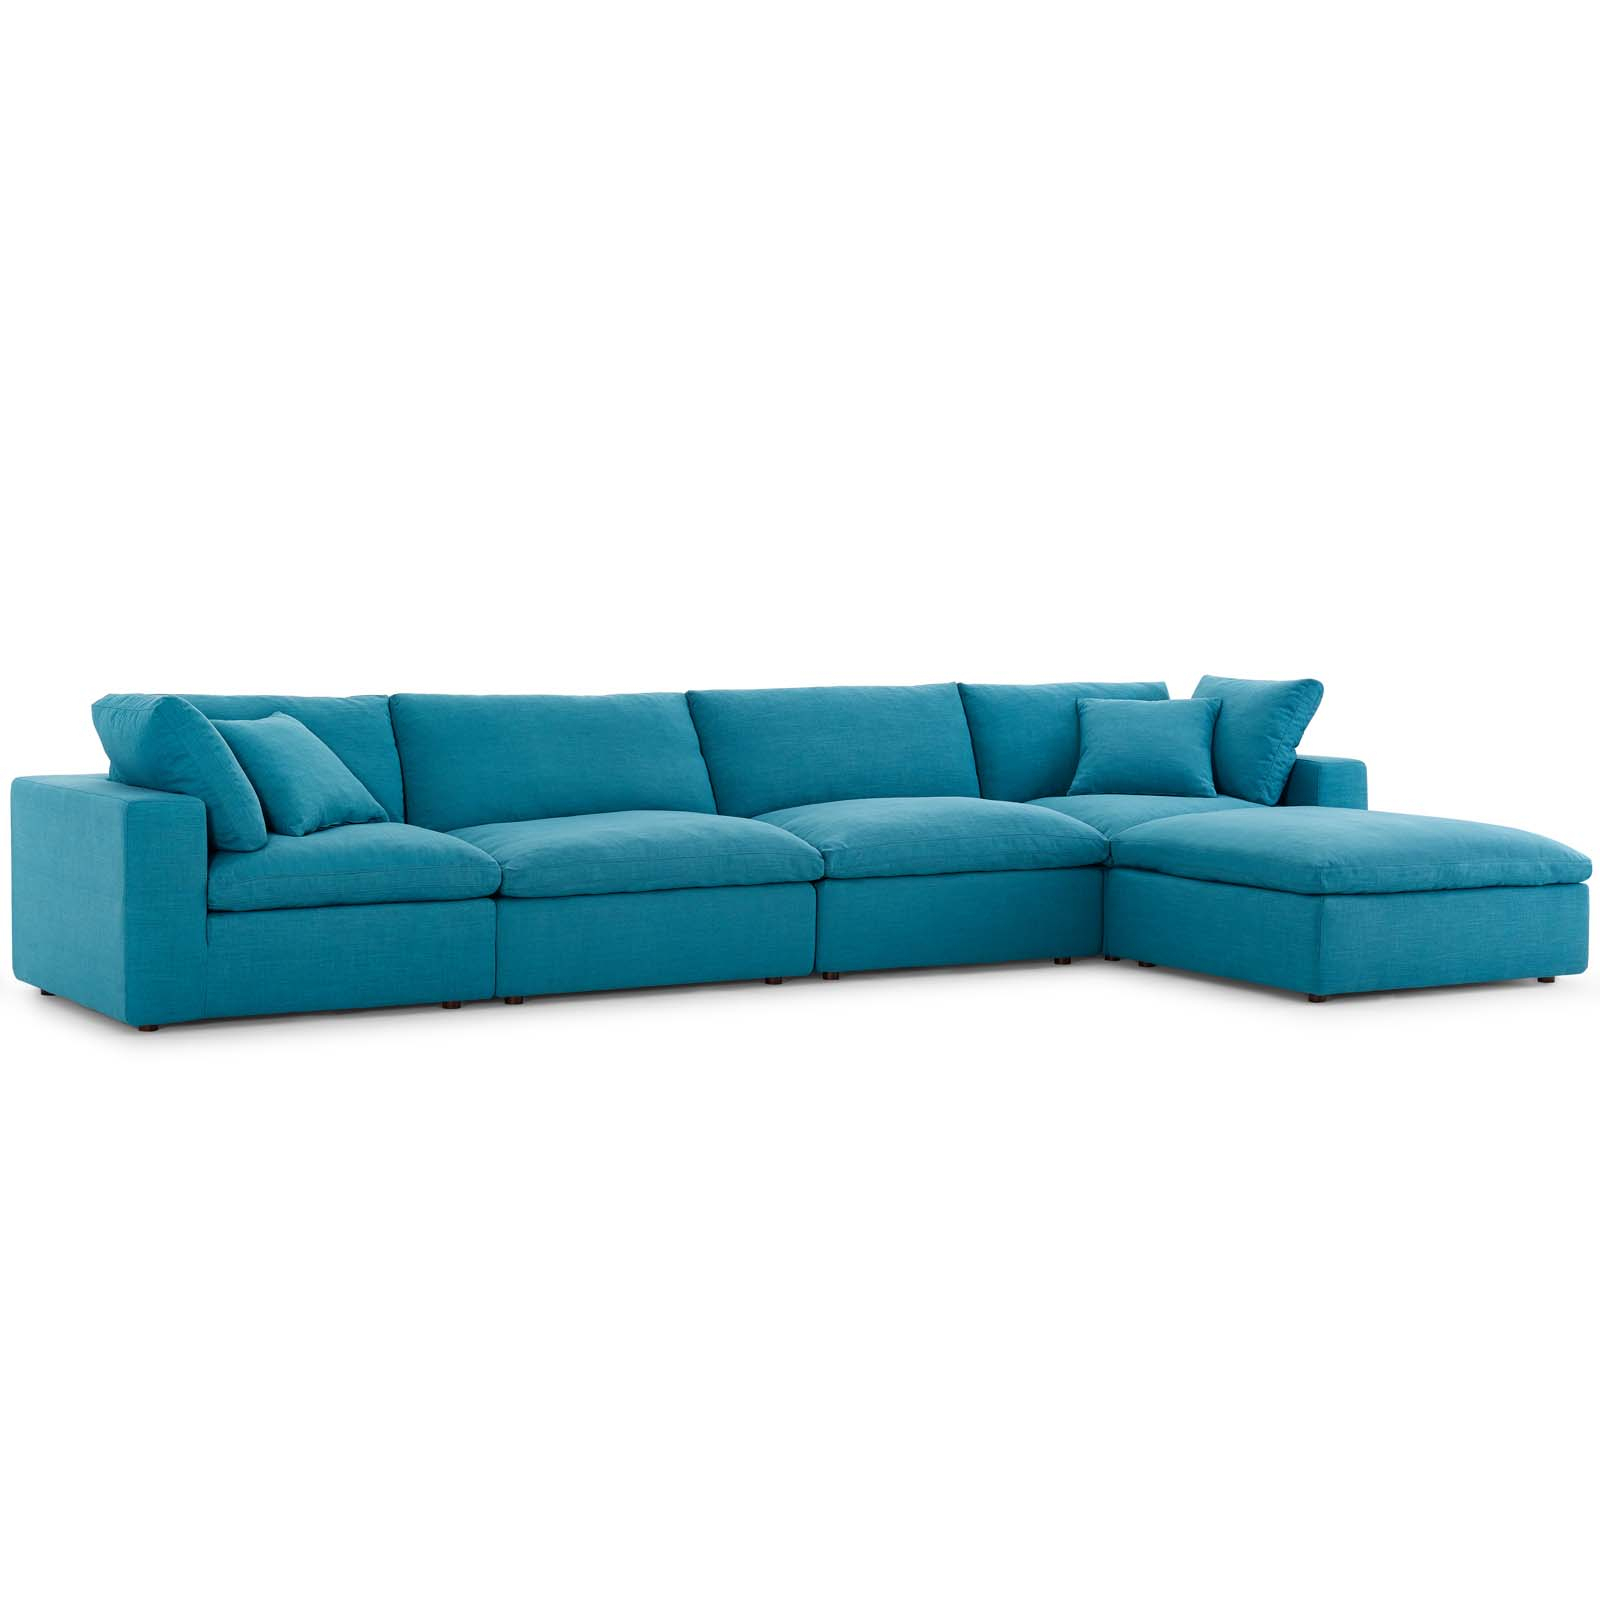 Commix Down Filled Overstuffed 5 Piece Sectional Sofa Set Teal Throughout Down Filled Sectional Sofas (View 11 of 15)